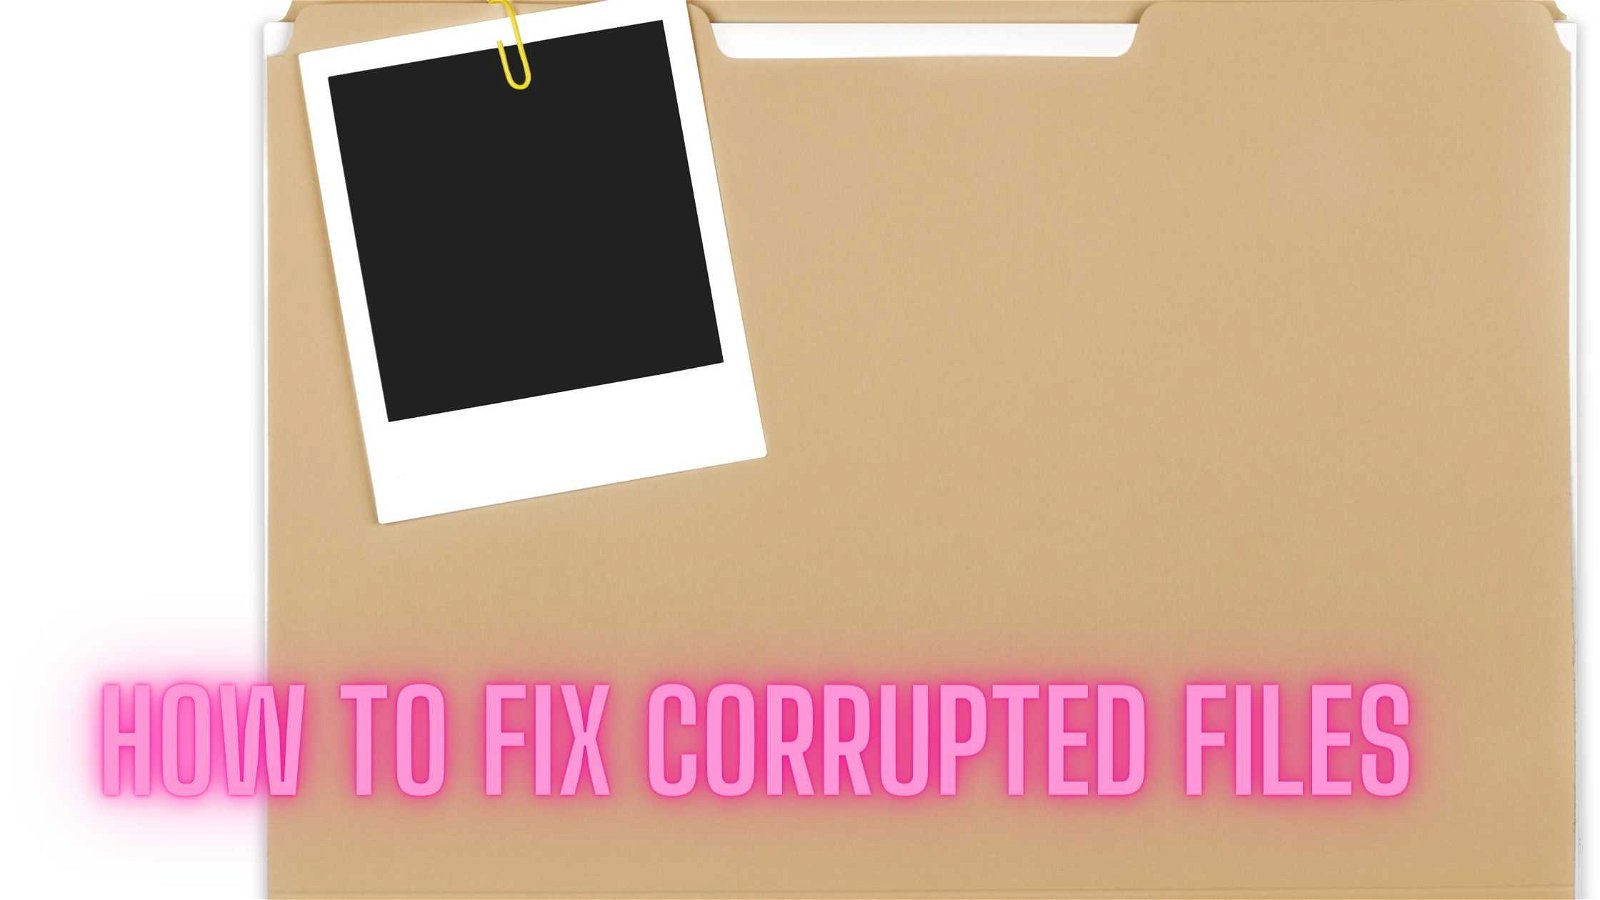 How To Fix Corrupted Files